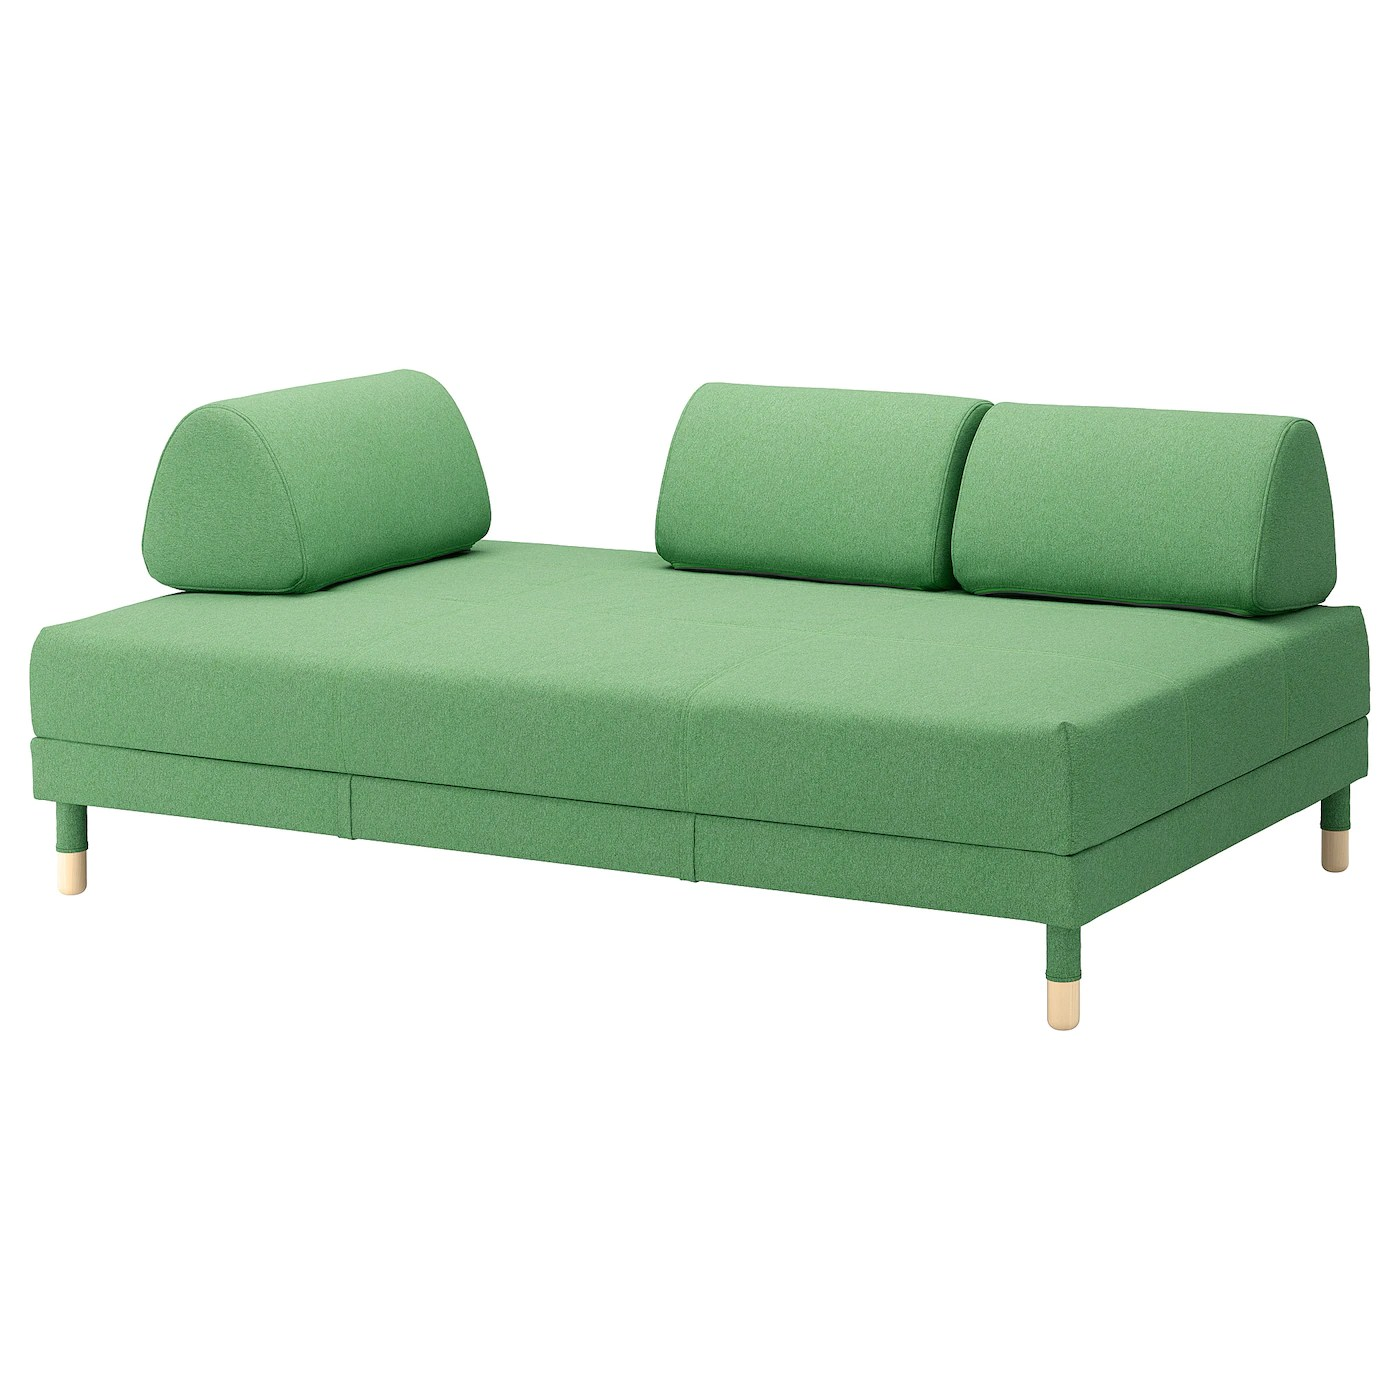 sofa befs best set colours flottebo bed lysed green 120 cm ikea the cover is easy to keep clean since it removable